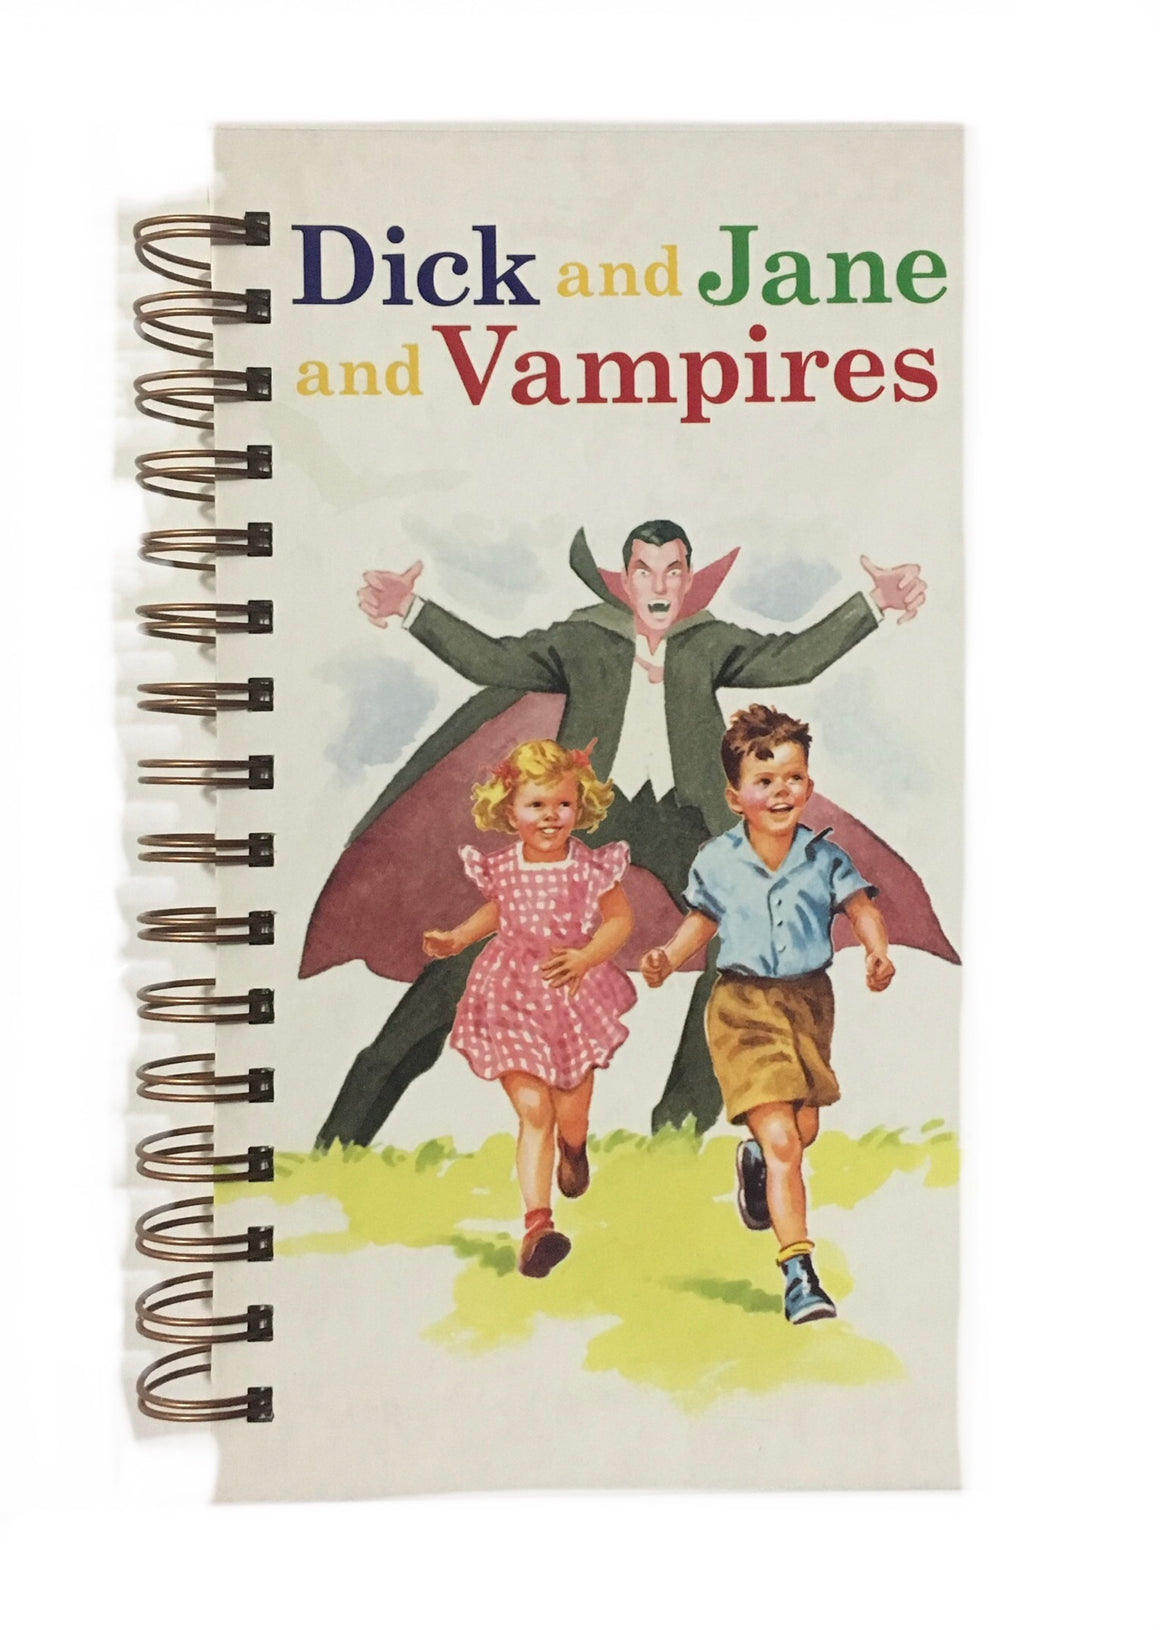 Dick and Jane and Vampires-Red Barn Collections